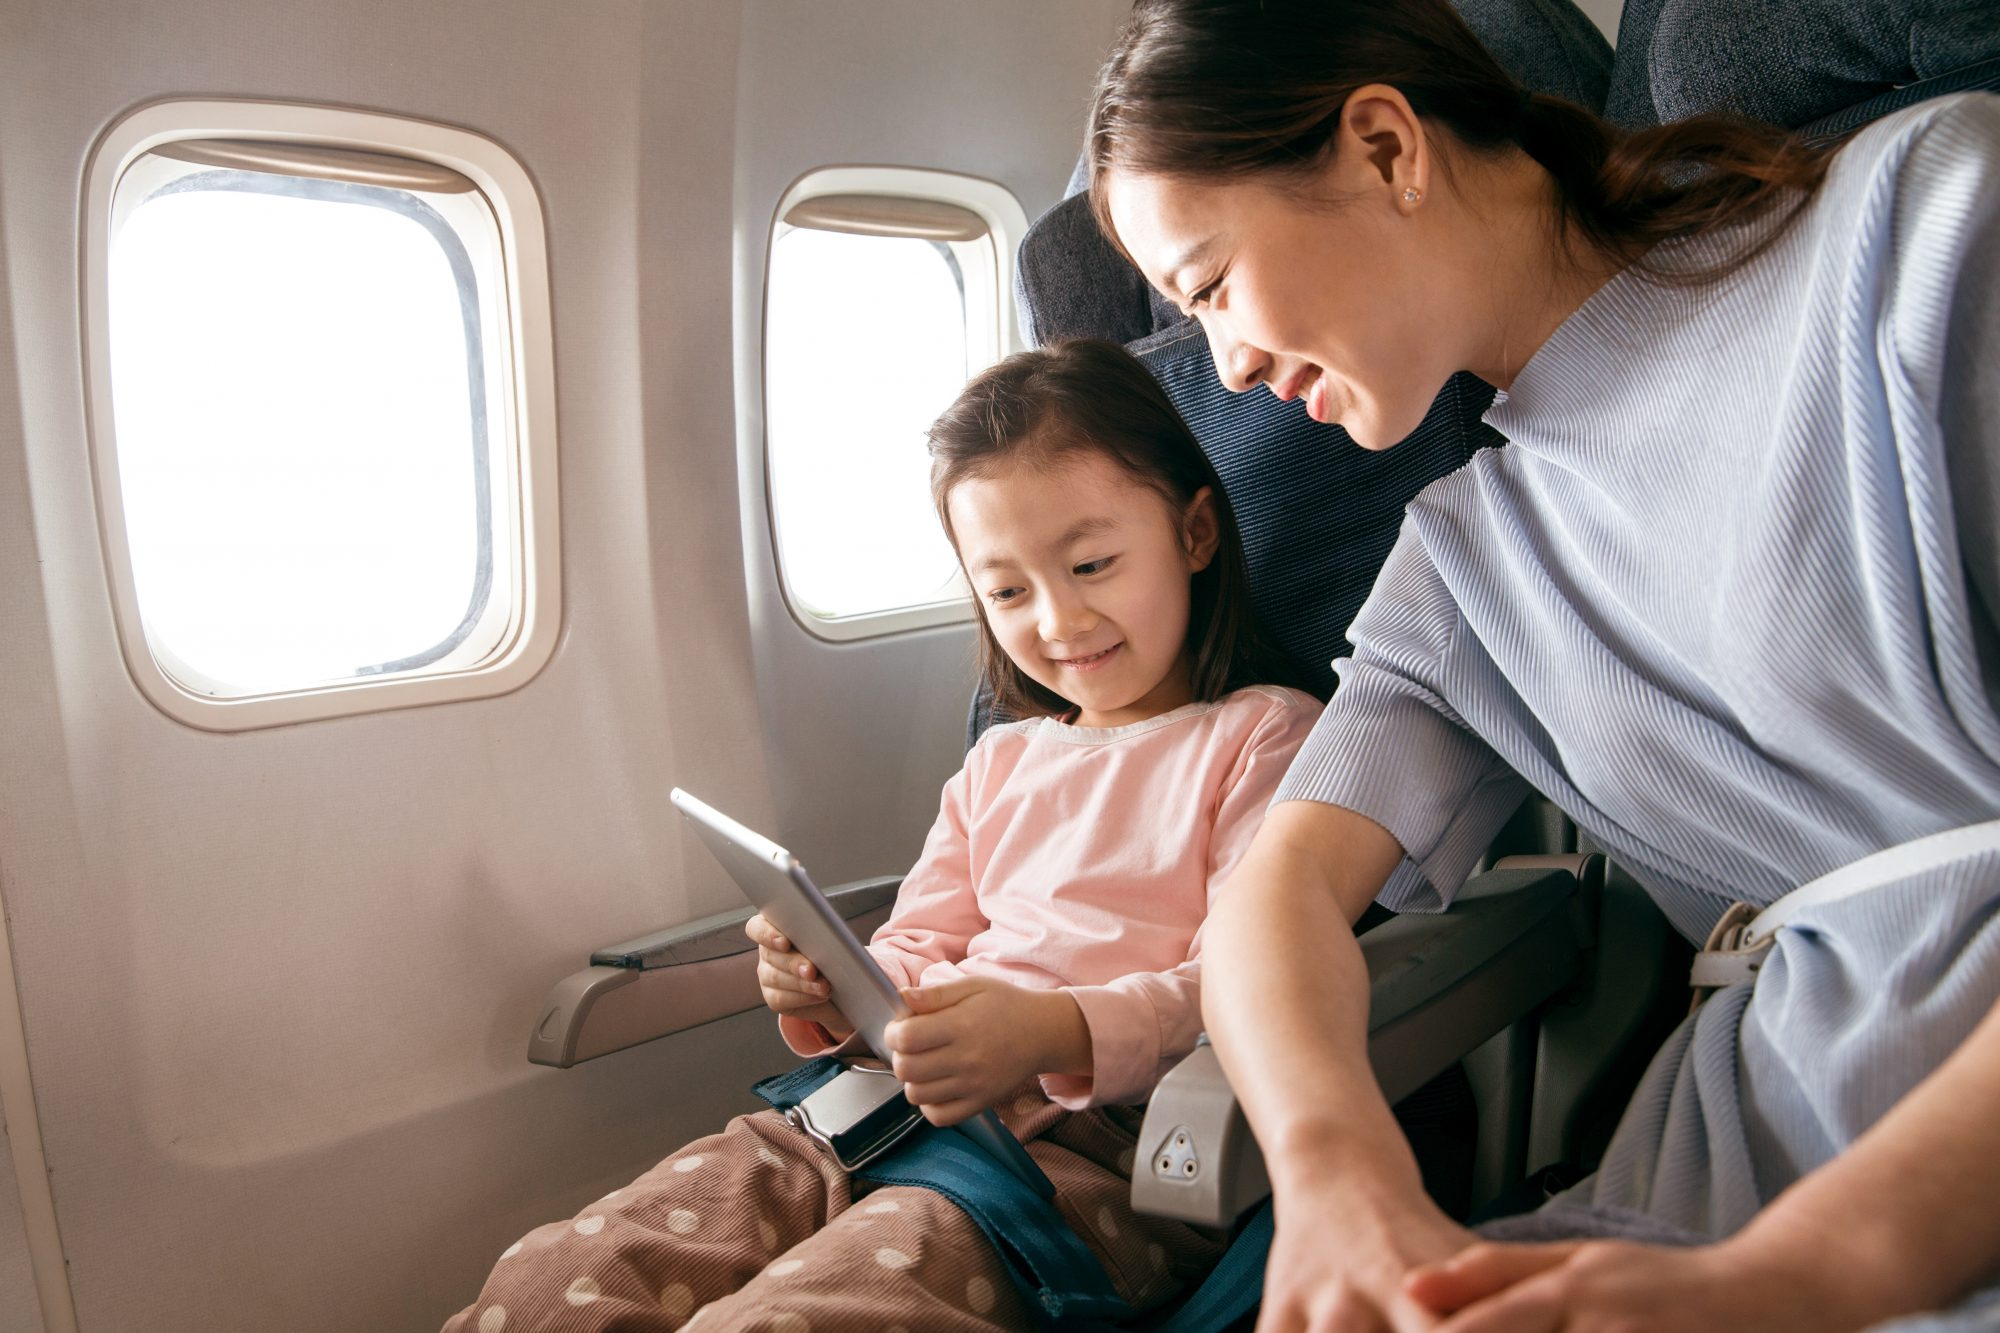 mother and daughter seated on a plane by the window